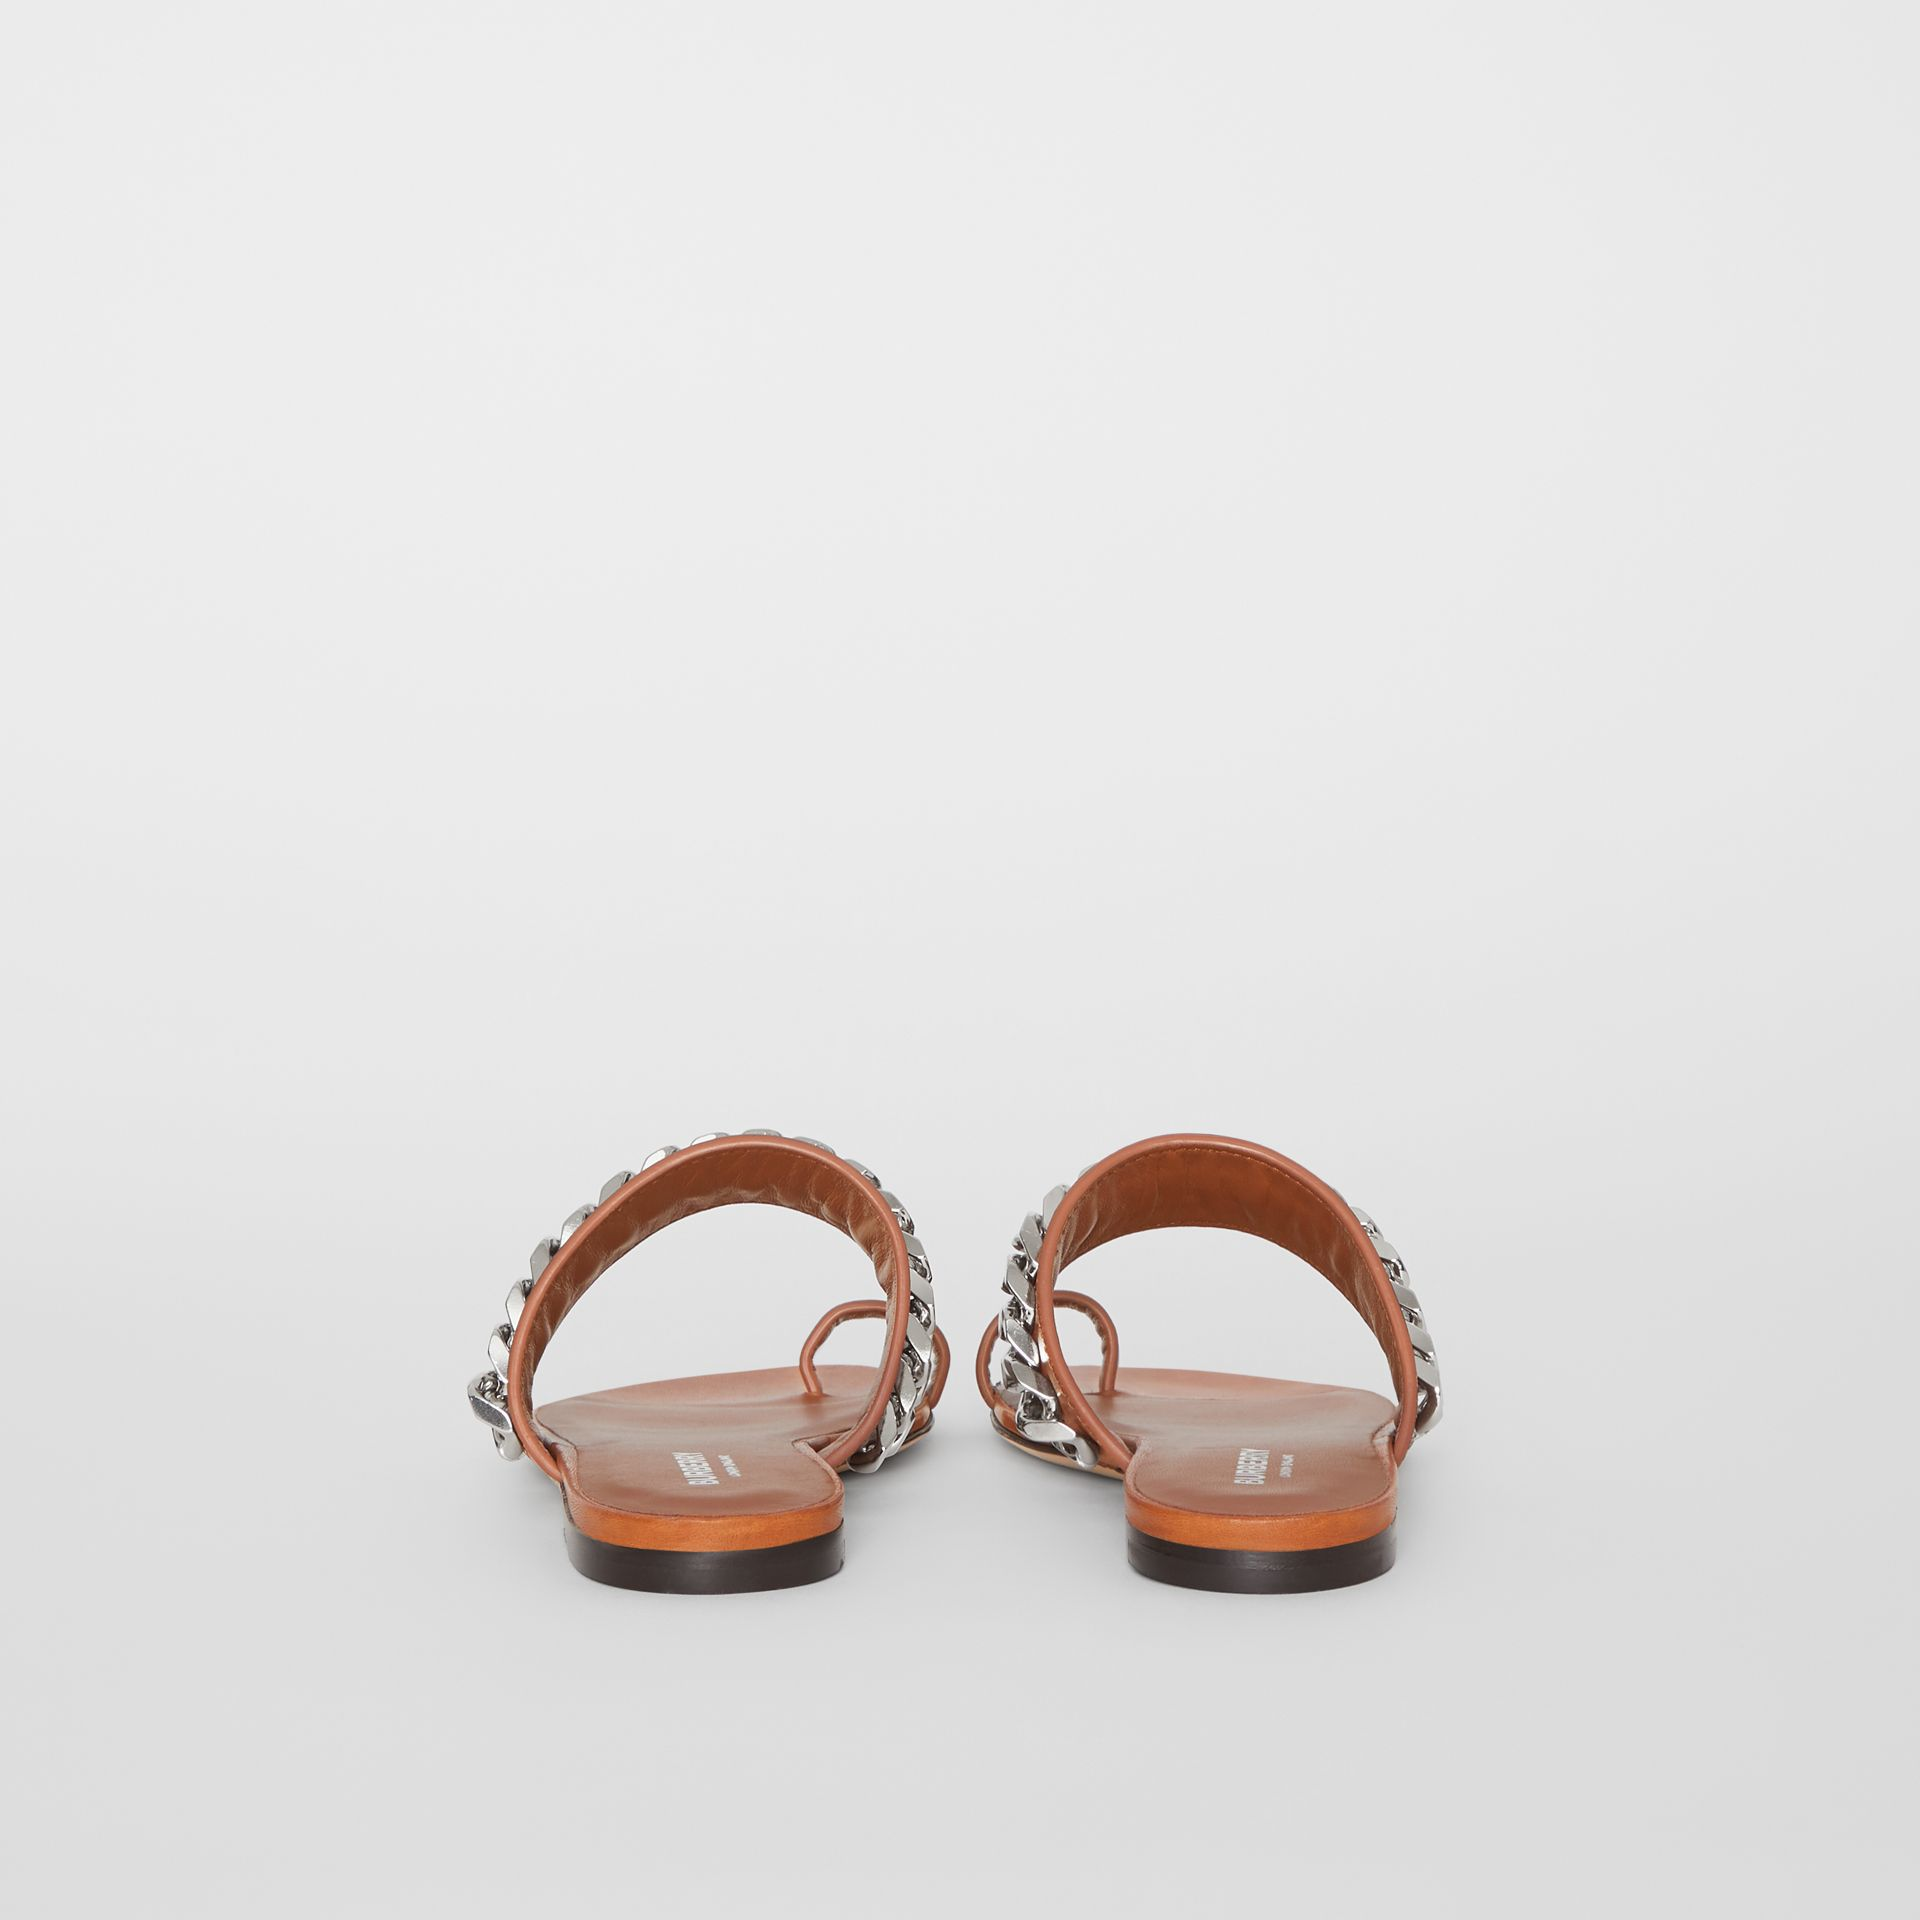 Chain Detail Leather Sandals in Amber - Women | Burberry Canada - gallery image 4